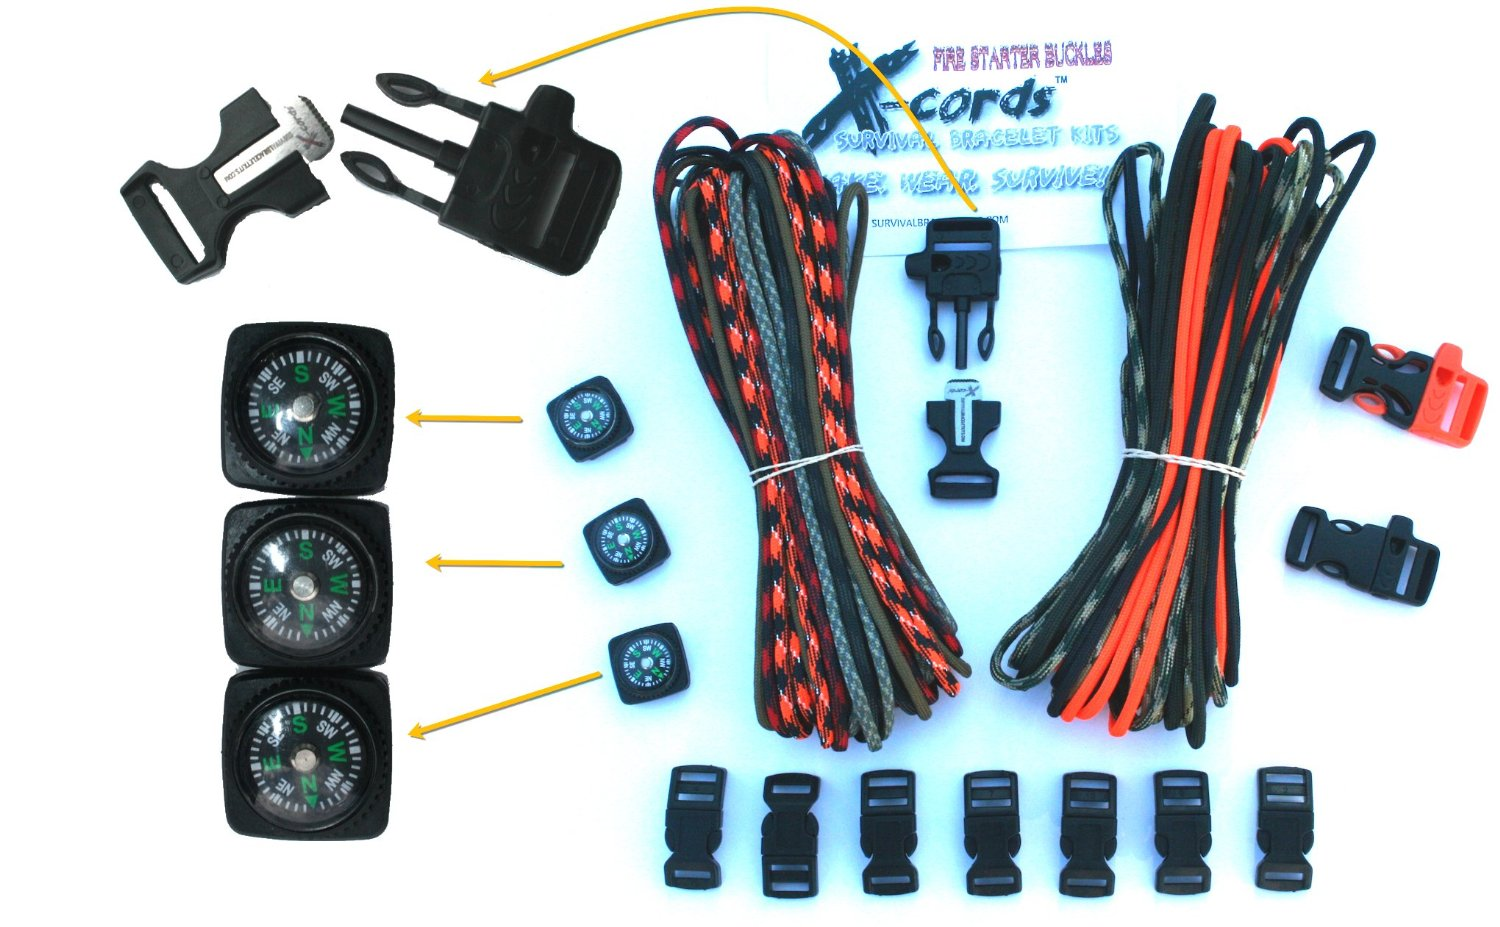 X-cords Paracord Bracelet Kit with Fire Starter Buckle-compass ...